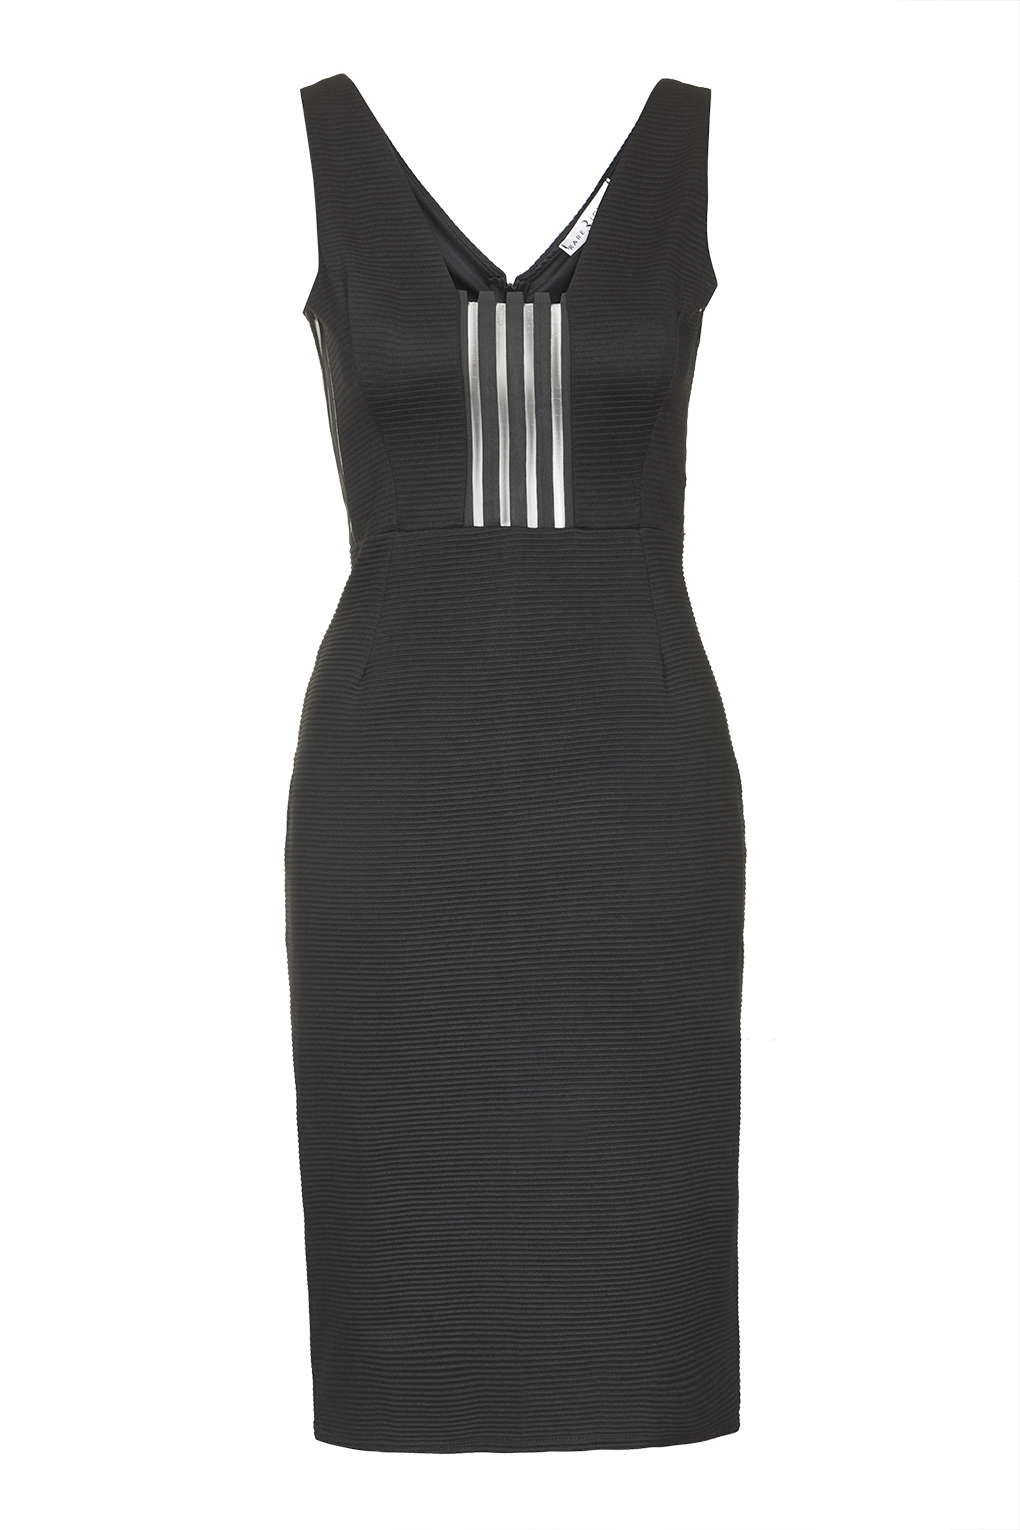 **Mesh Stripe Ribbed Midi Dress by Rare - New In Dresses - New In - Topshop